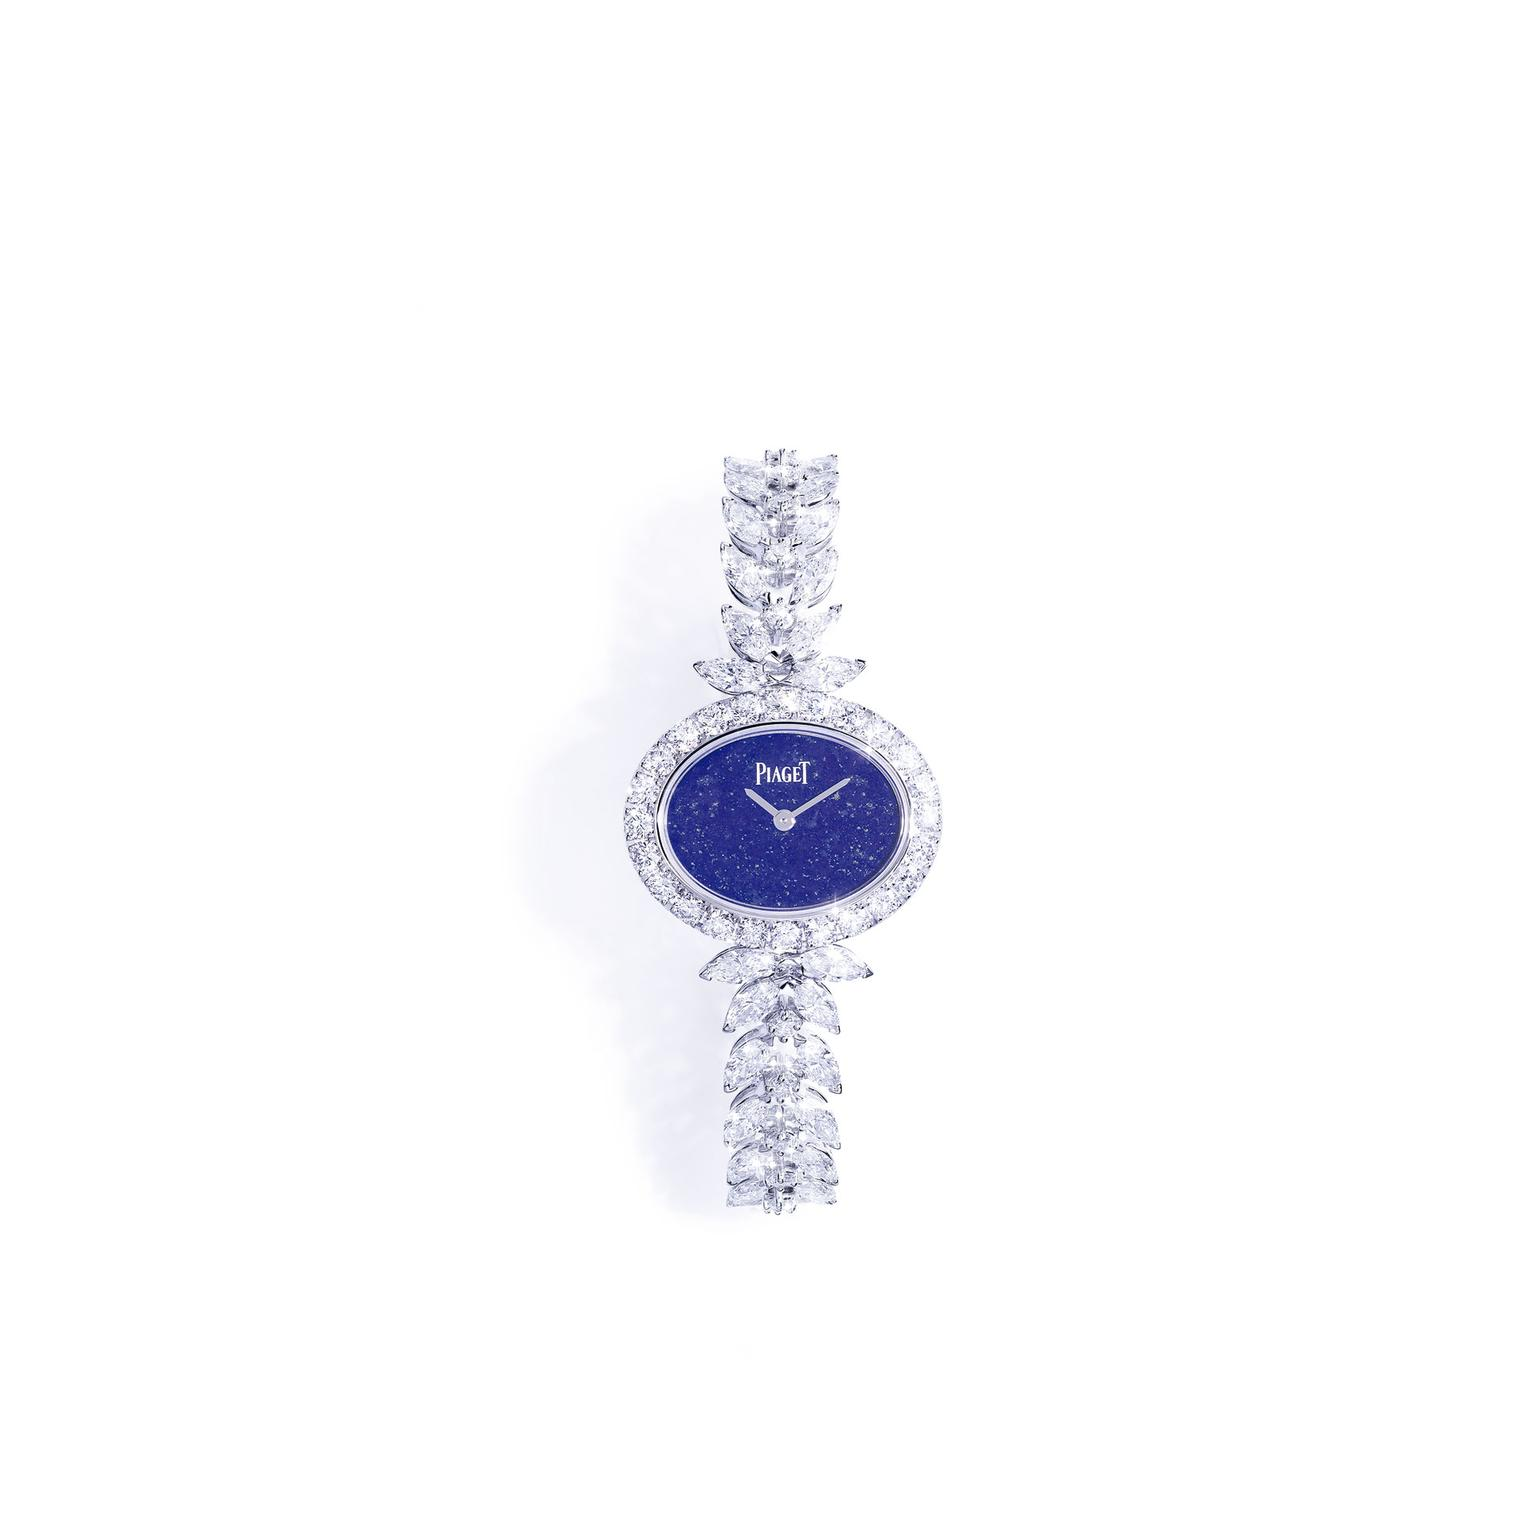 Piaget Sunny Side of life white gold watch with lapis lazuli dial